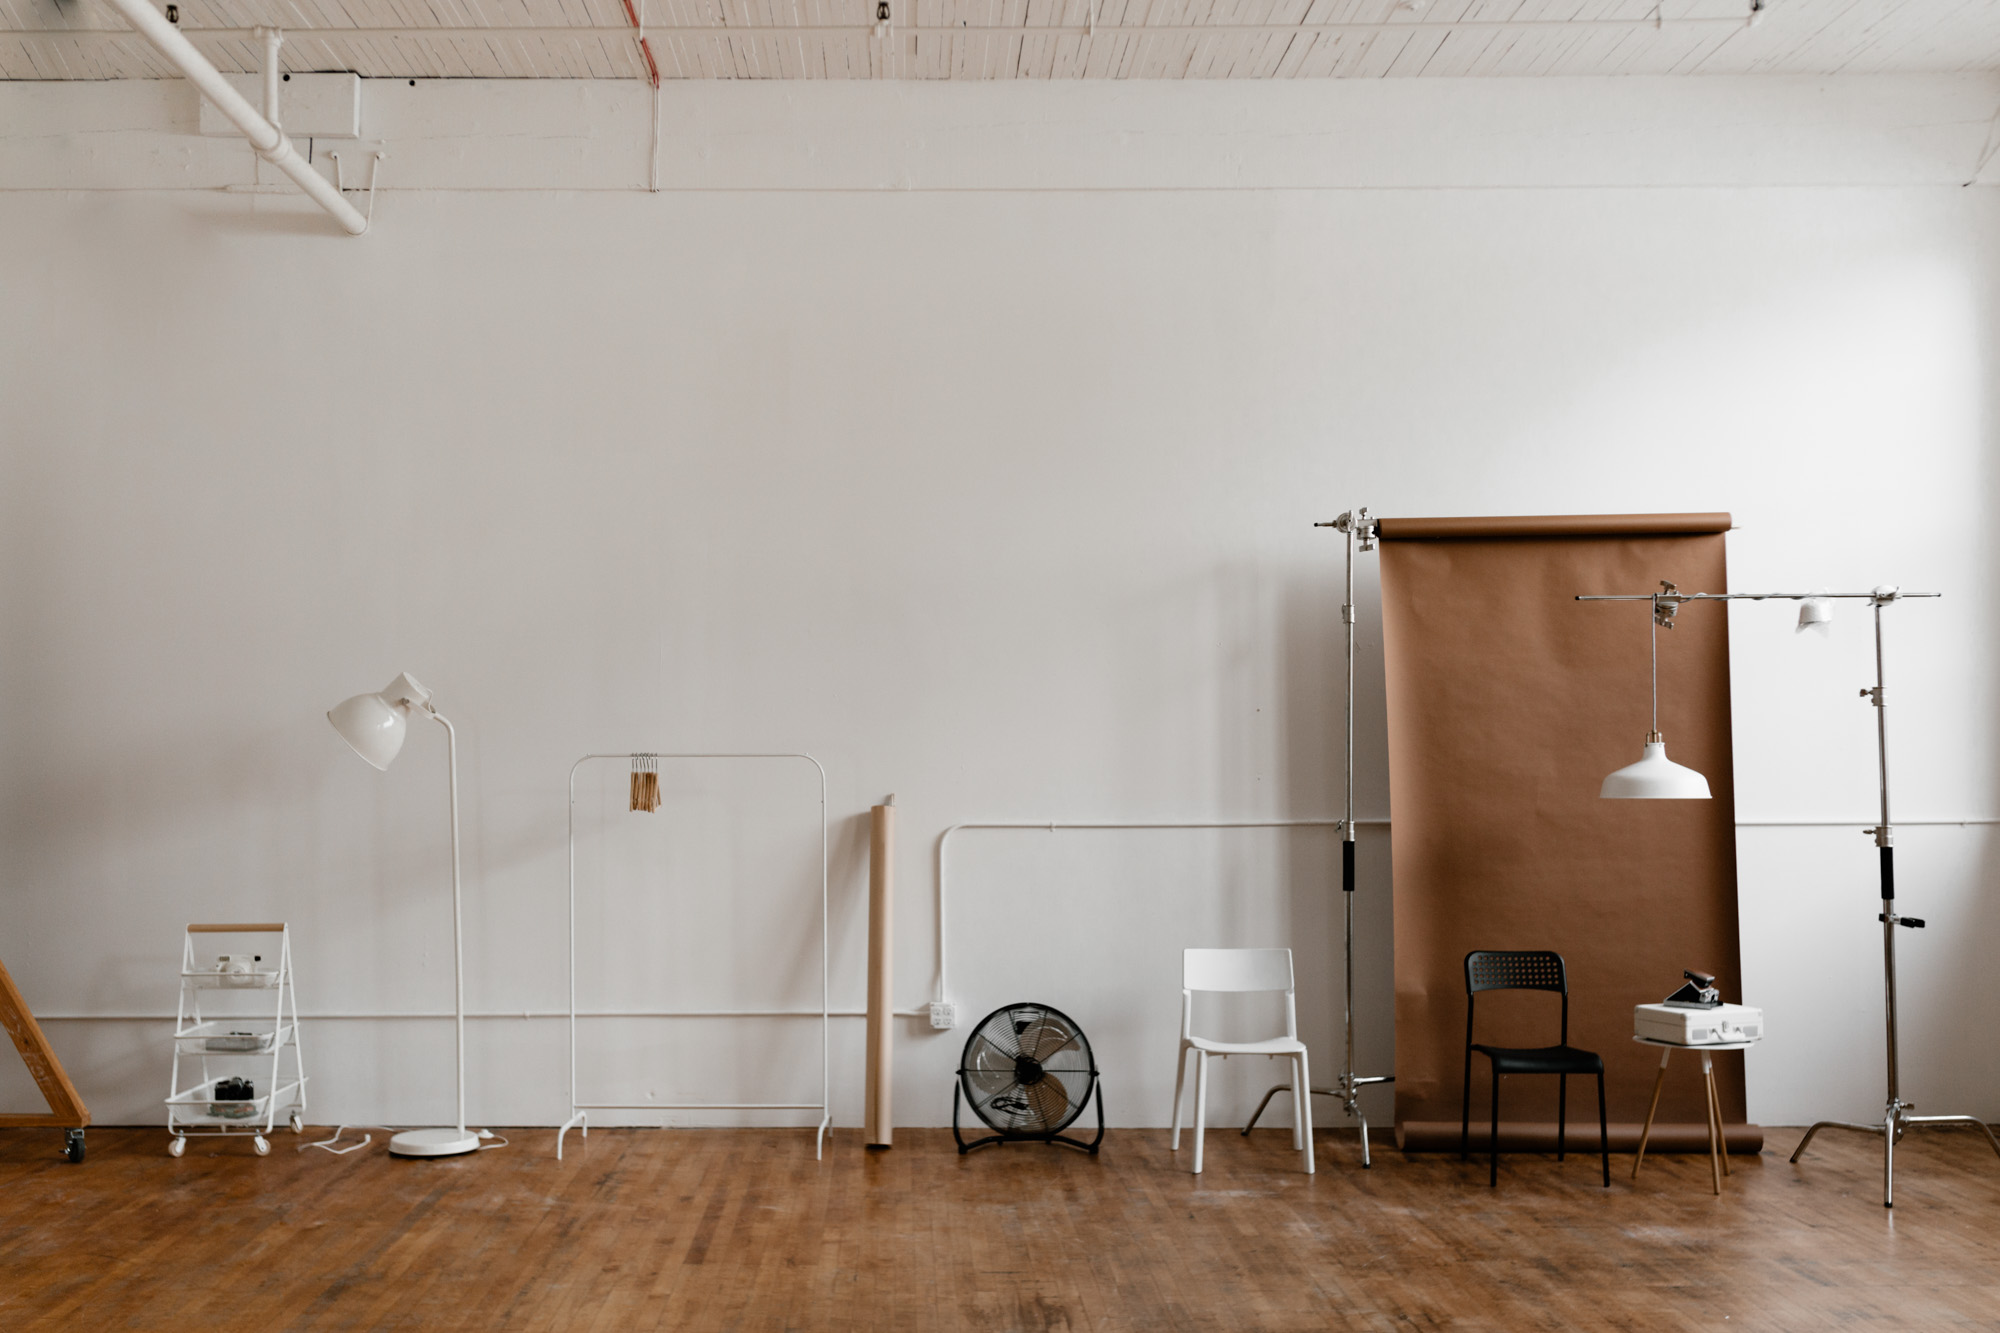 The_Portland_Studio_Rentable_Photo_Studio22.jpg